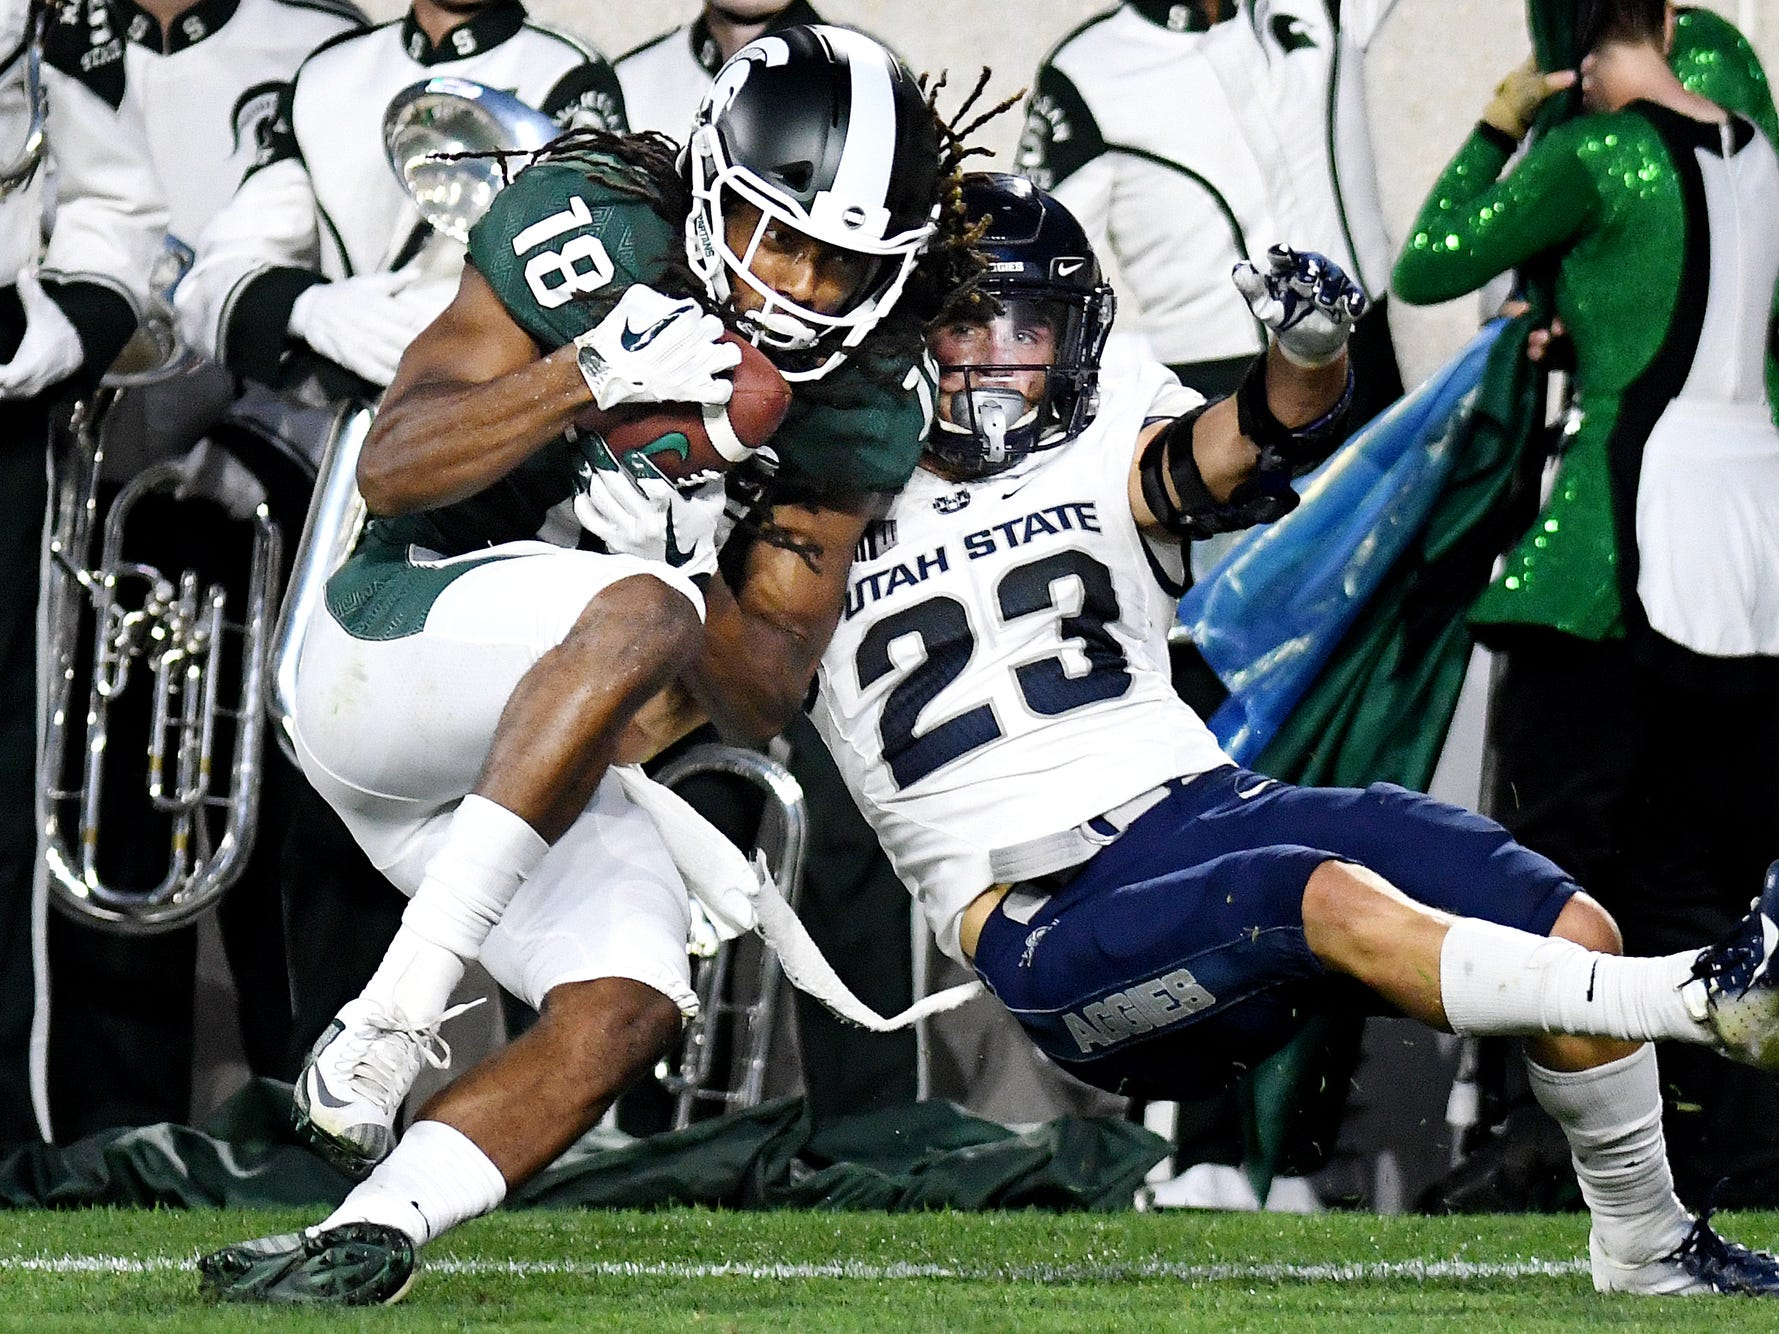 Michigan State's Felton Davis III, left, catches a touchdown as Utah State's Gaje Ferguson defends during the second quarter on Friday, Aug. 31, 2018, at Spartan Stadium in East Lansing.